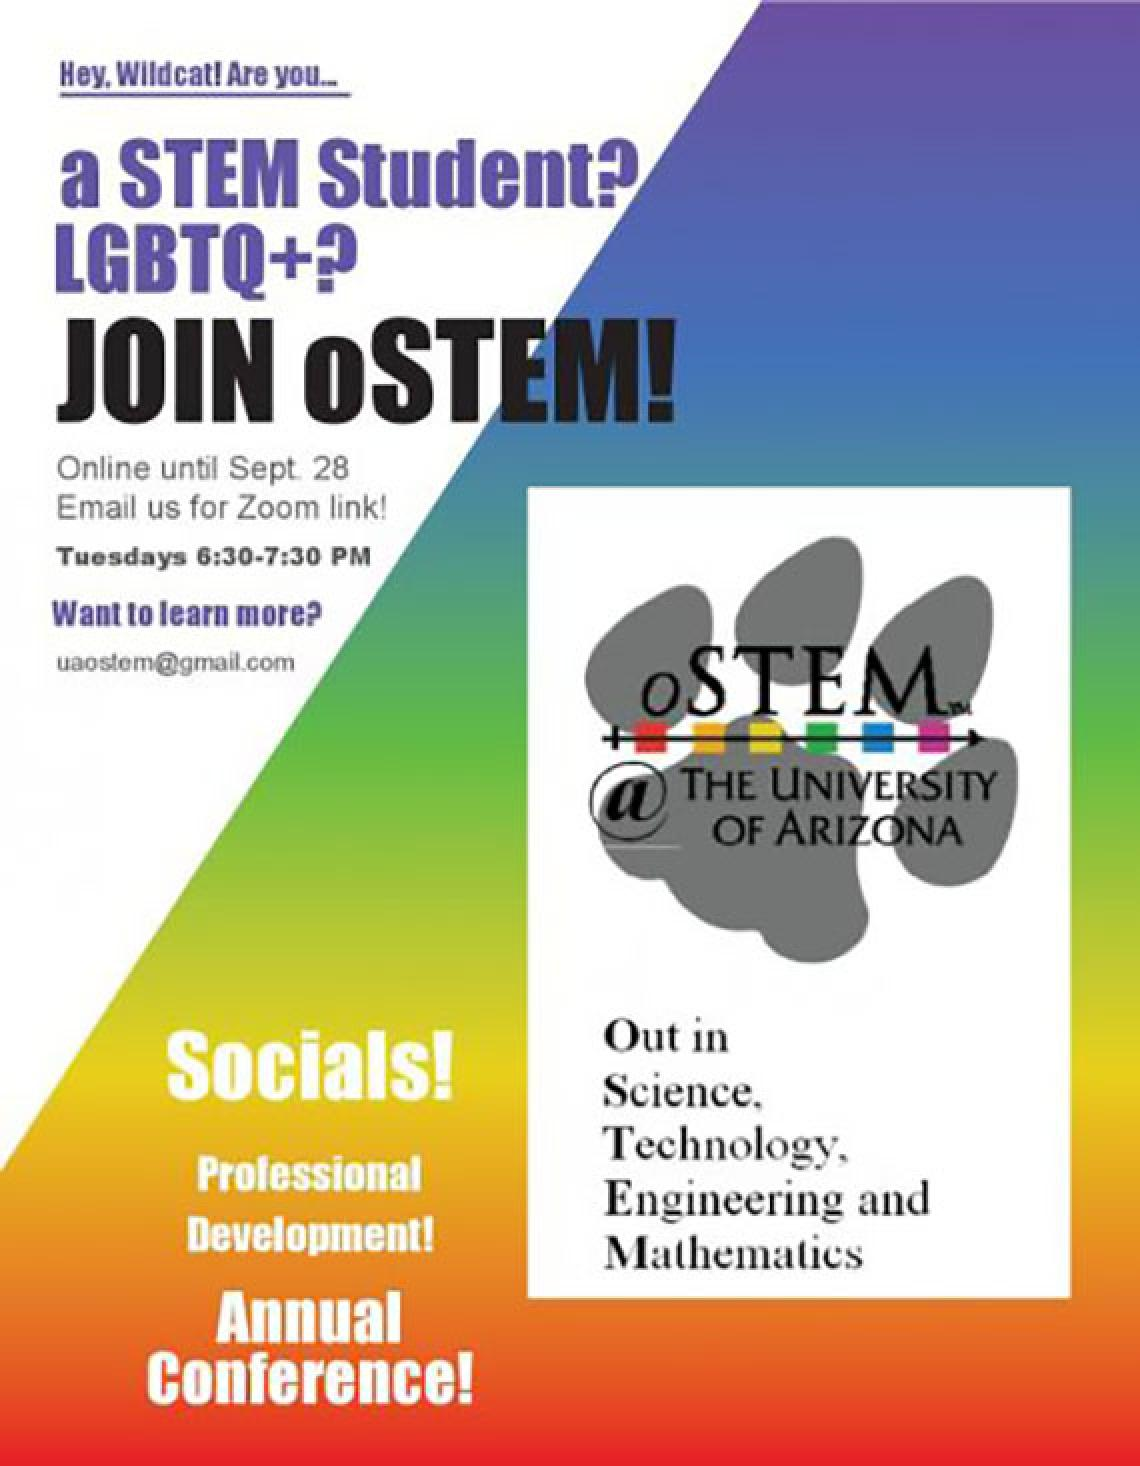 oSTEM   Out in Science, Technology, Engineering, and Mathematics